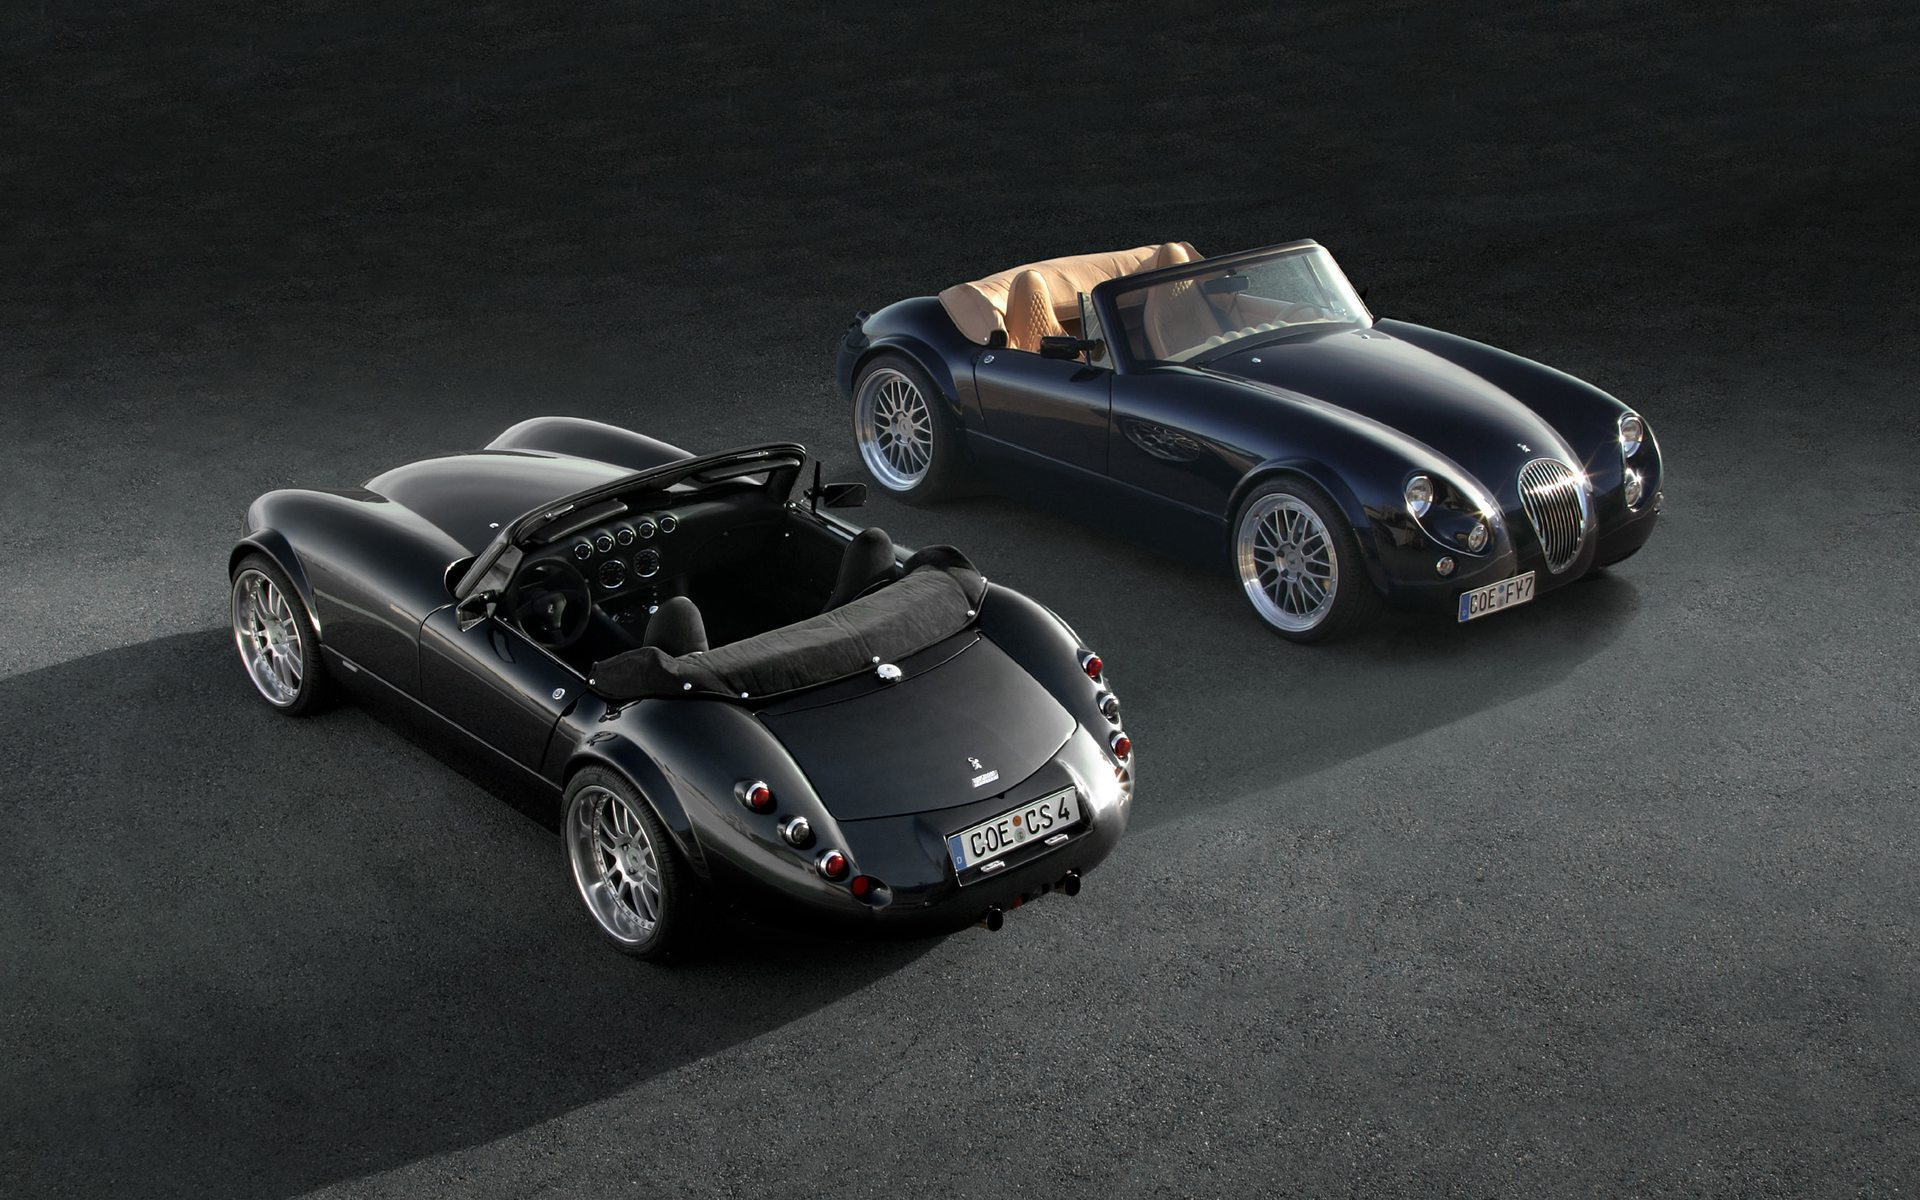 Roadster Wiesmann, front and rear, photos